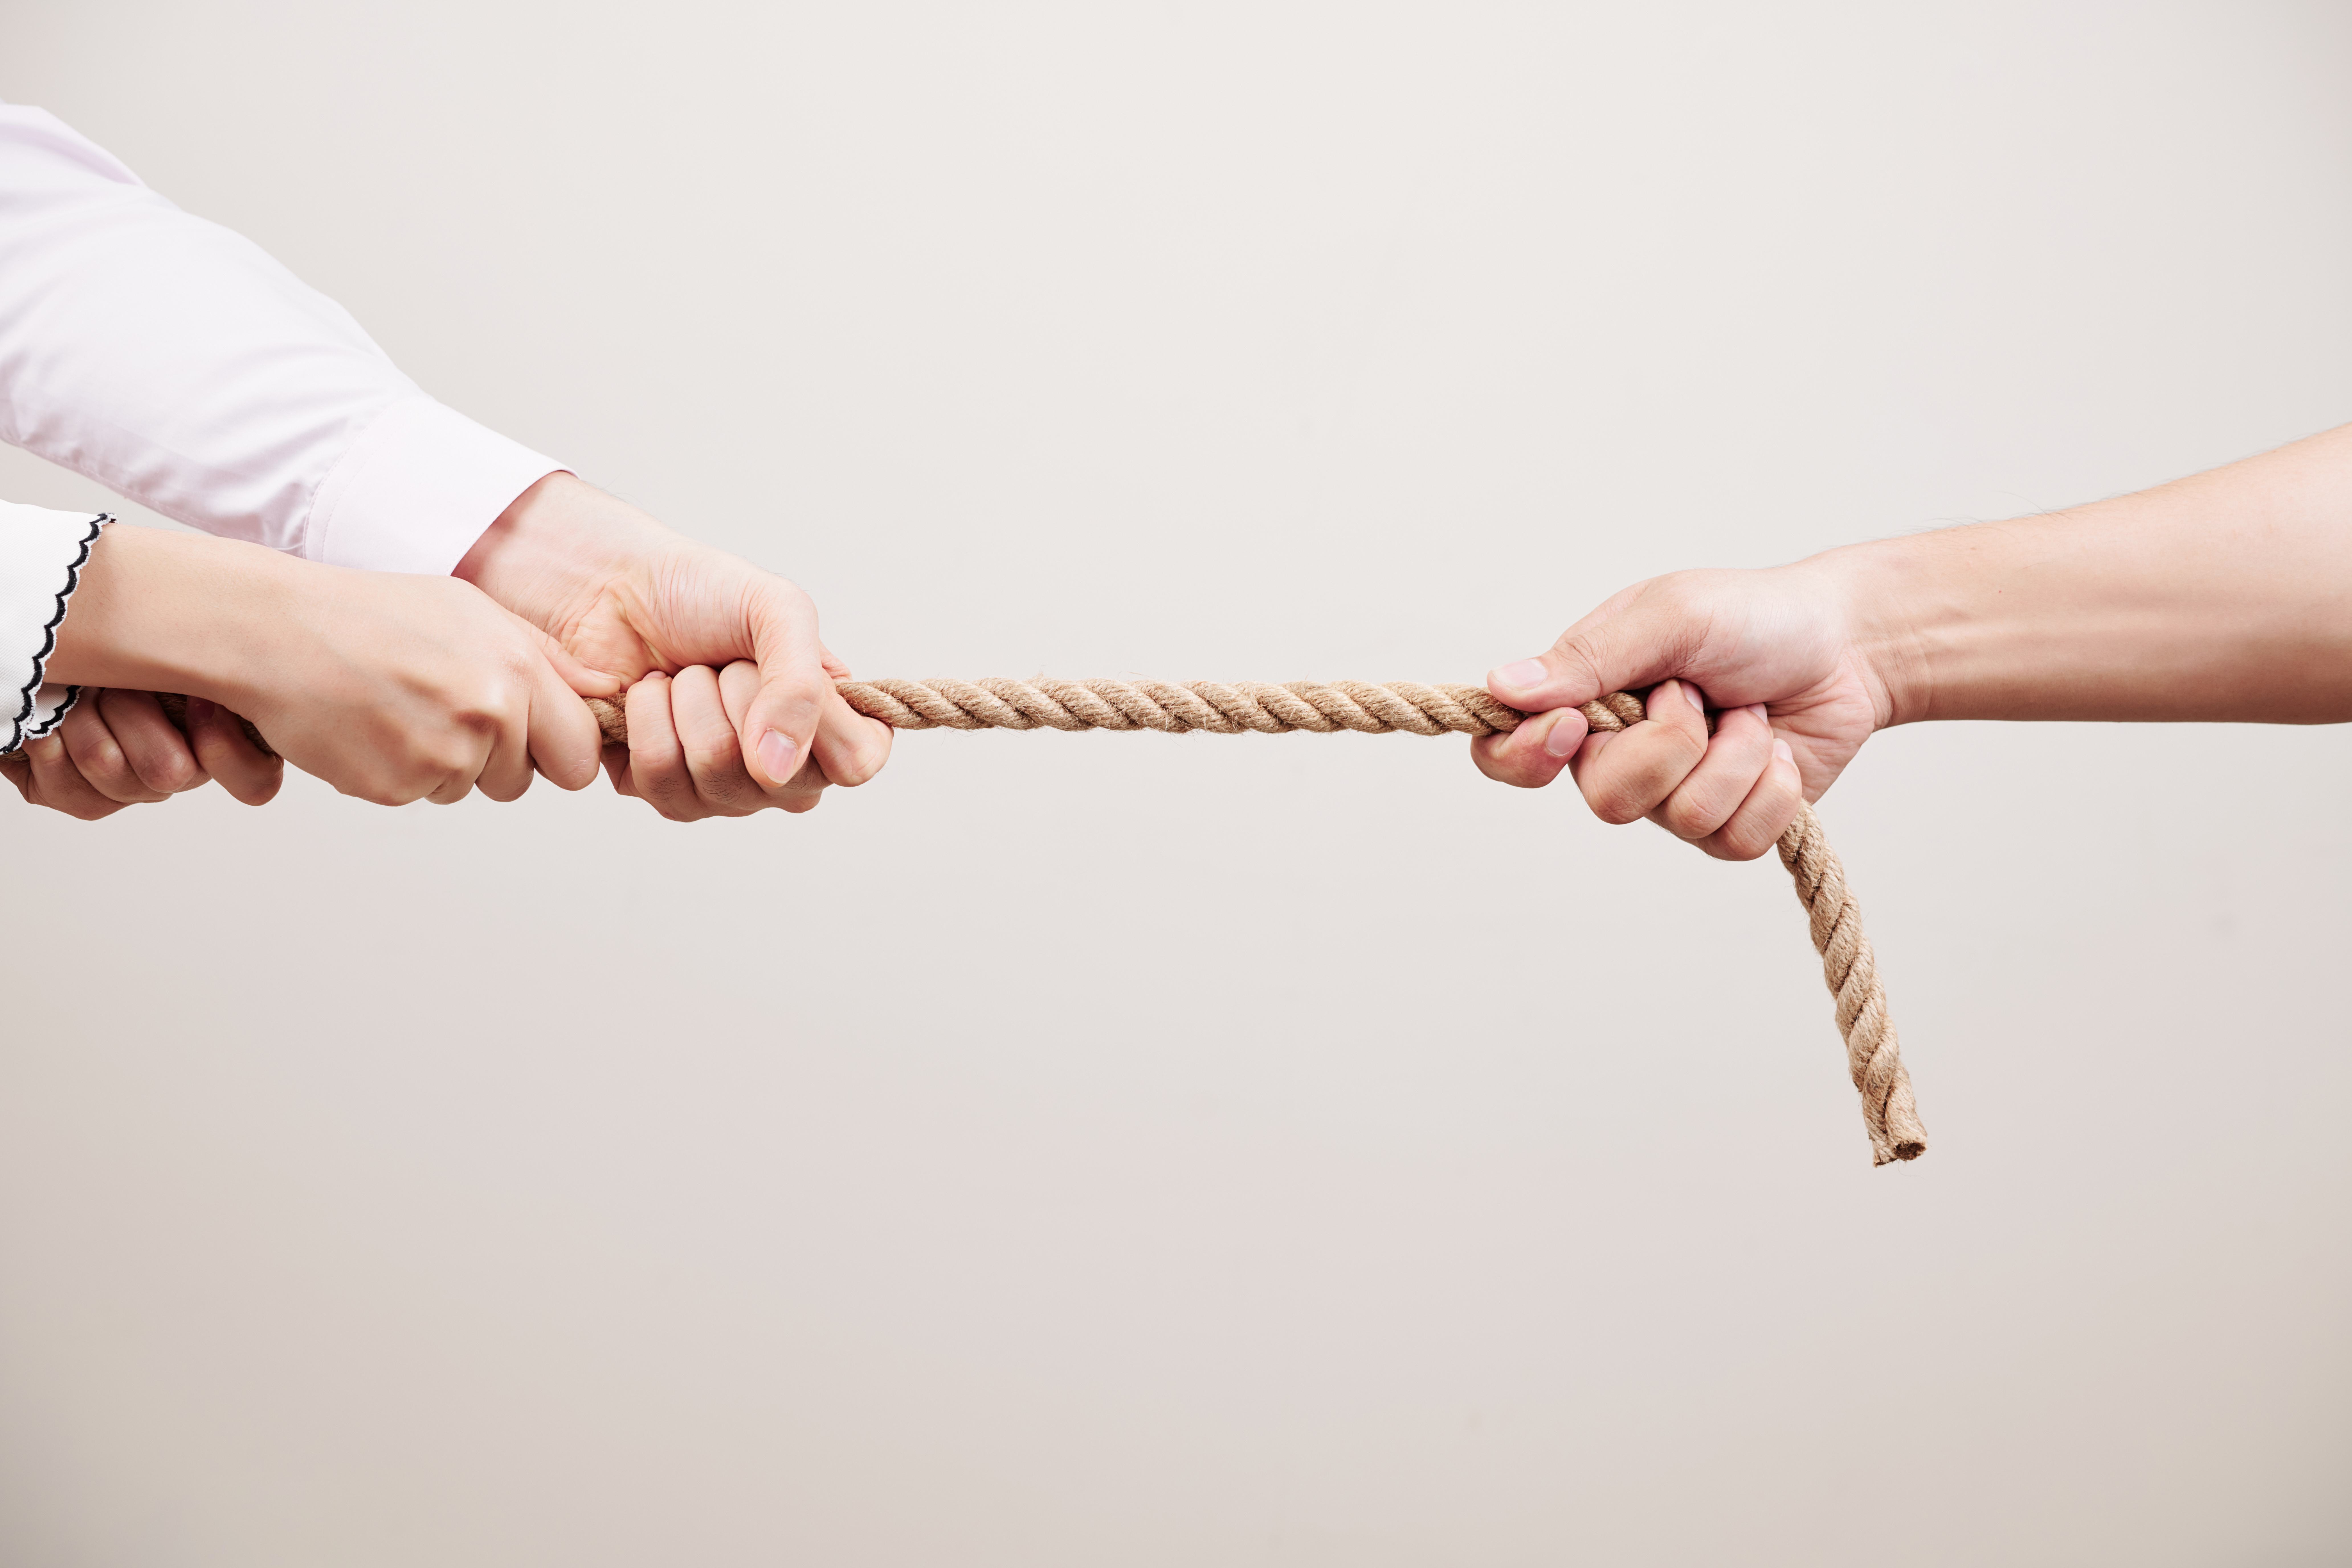 Executive Leadership Podcast #102: Why Can't You Just Like Me and Do What I Say?